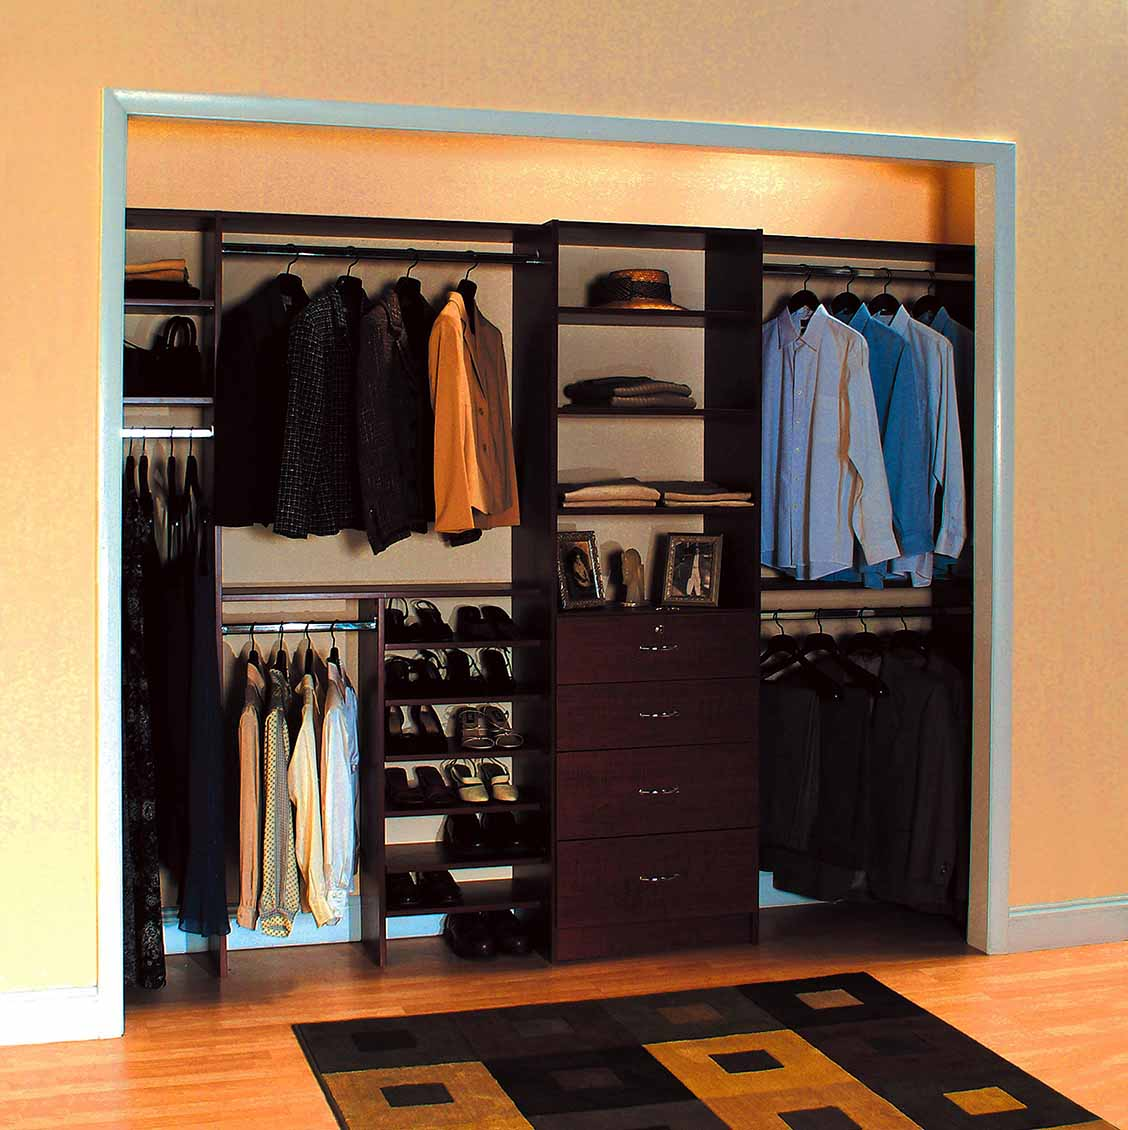 Mens Reach-in closet with wardrobe items neatly organized